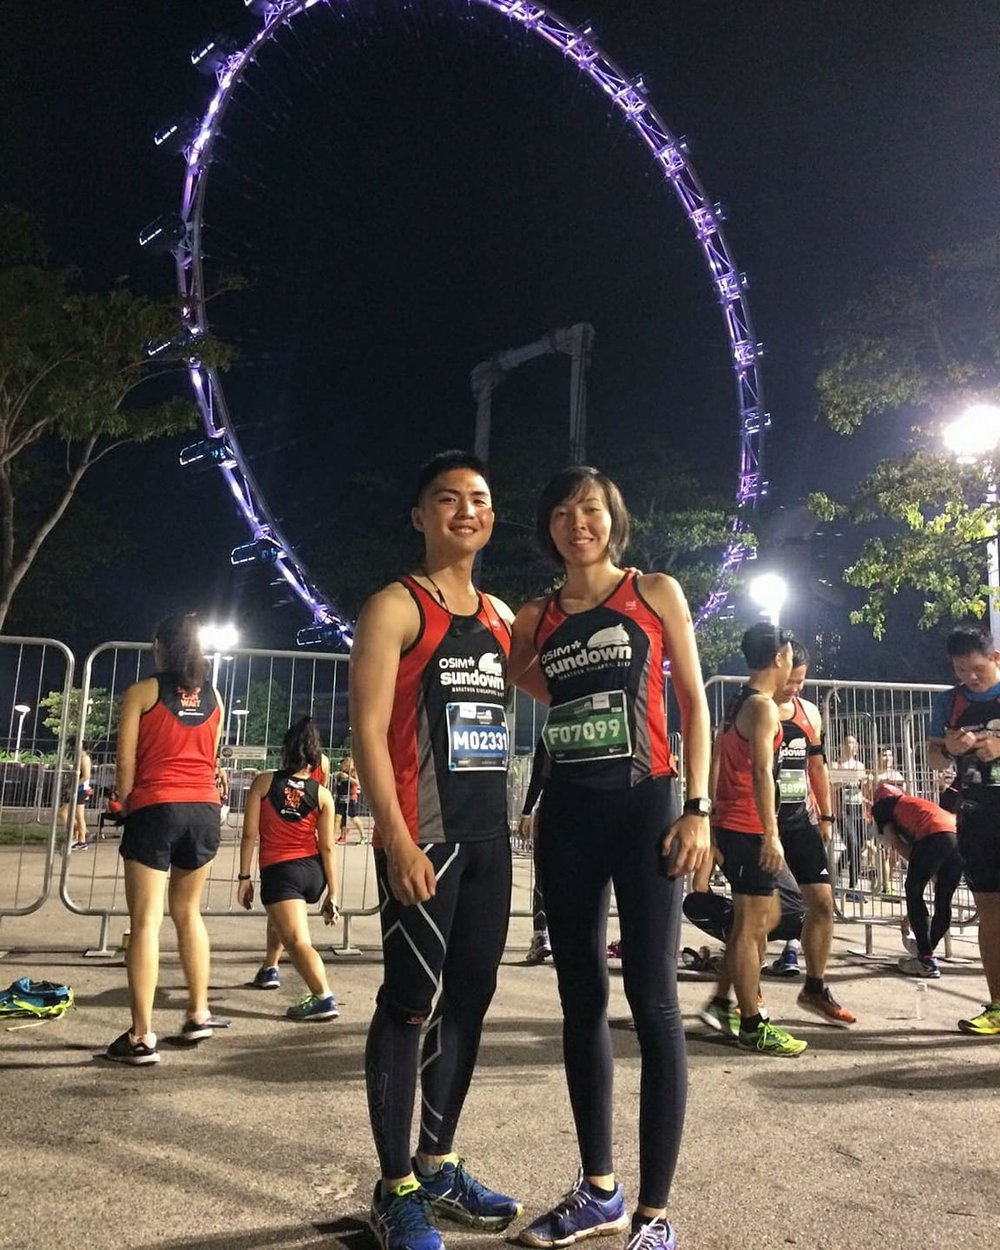 A photo together before walking to the start point. In the background shows the Singapore Flyer.